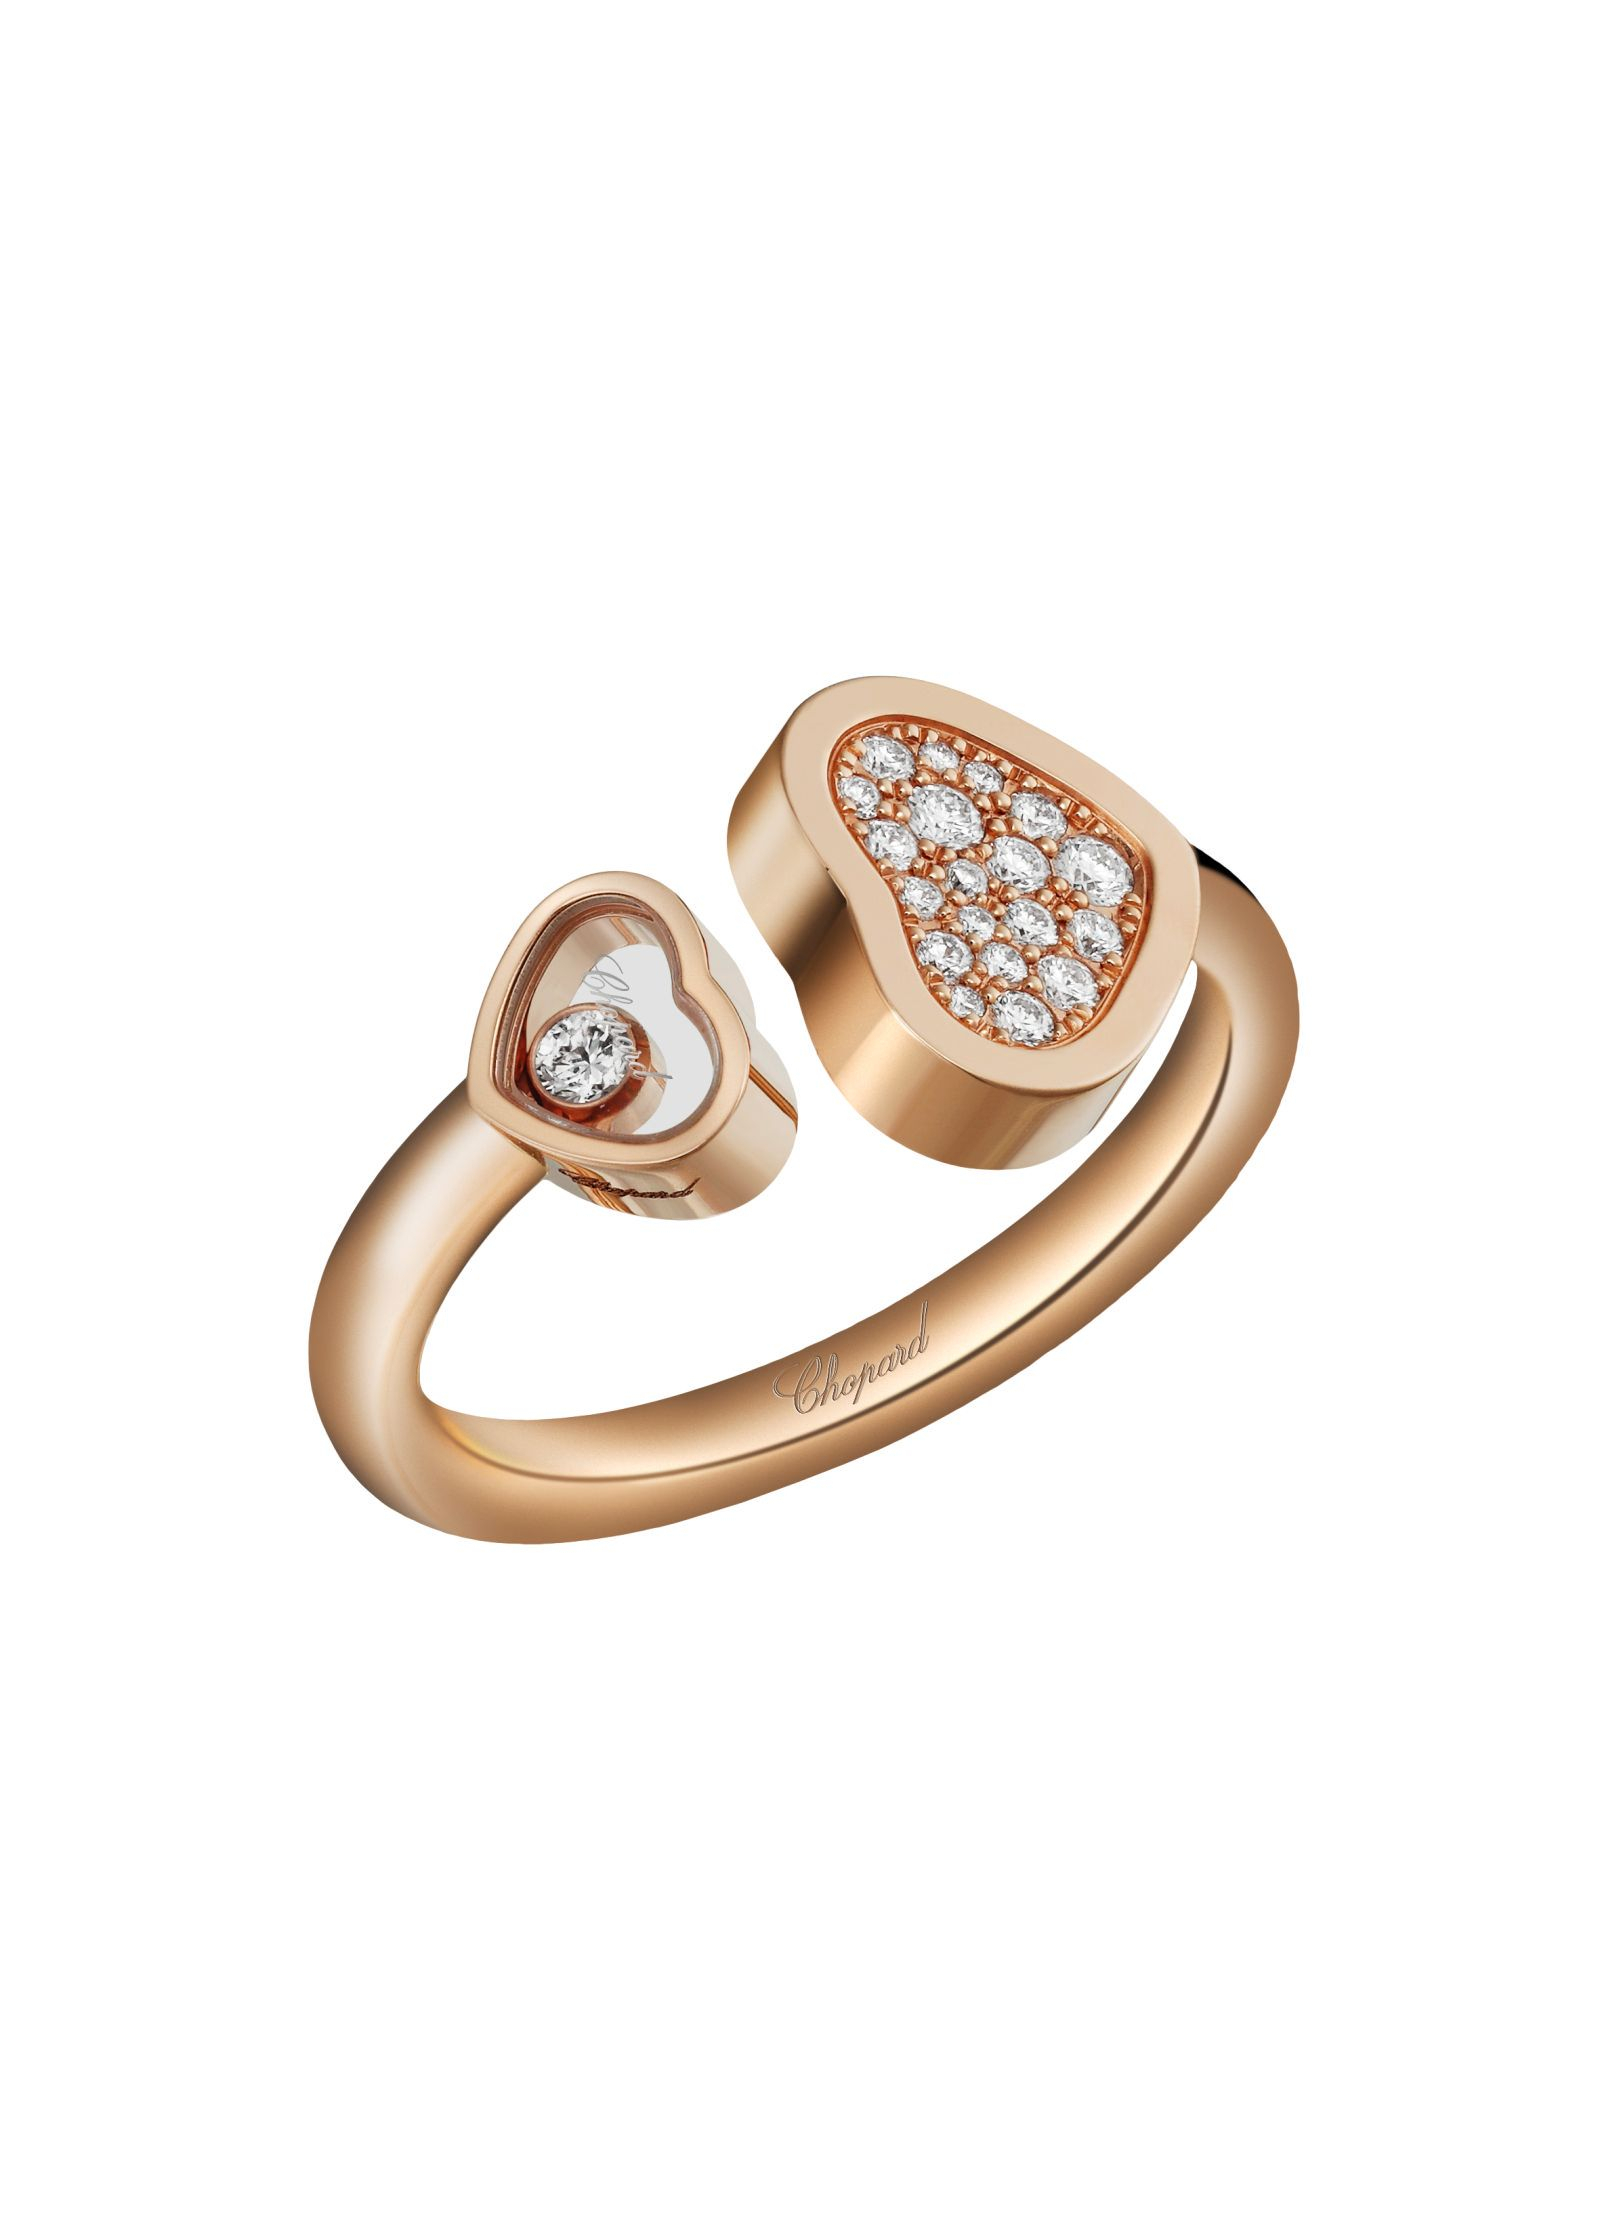 Happy Hearts Ring 18k Rose Gold And Diamonds @829482 5900 – Chopard Intended For Latest Two Sparkling Hearts Rings (View 16 of 25)